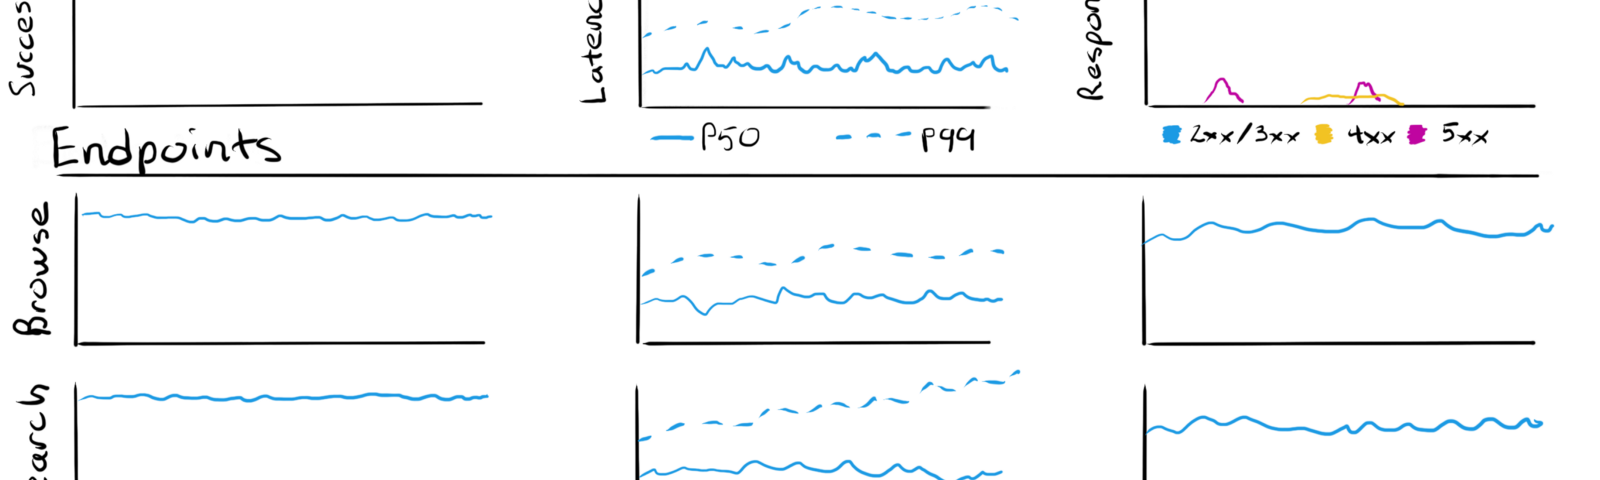 Charts representing request volume, error rate, and latency over several endpoints.